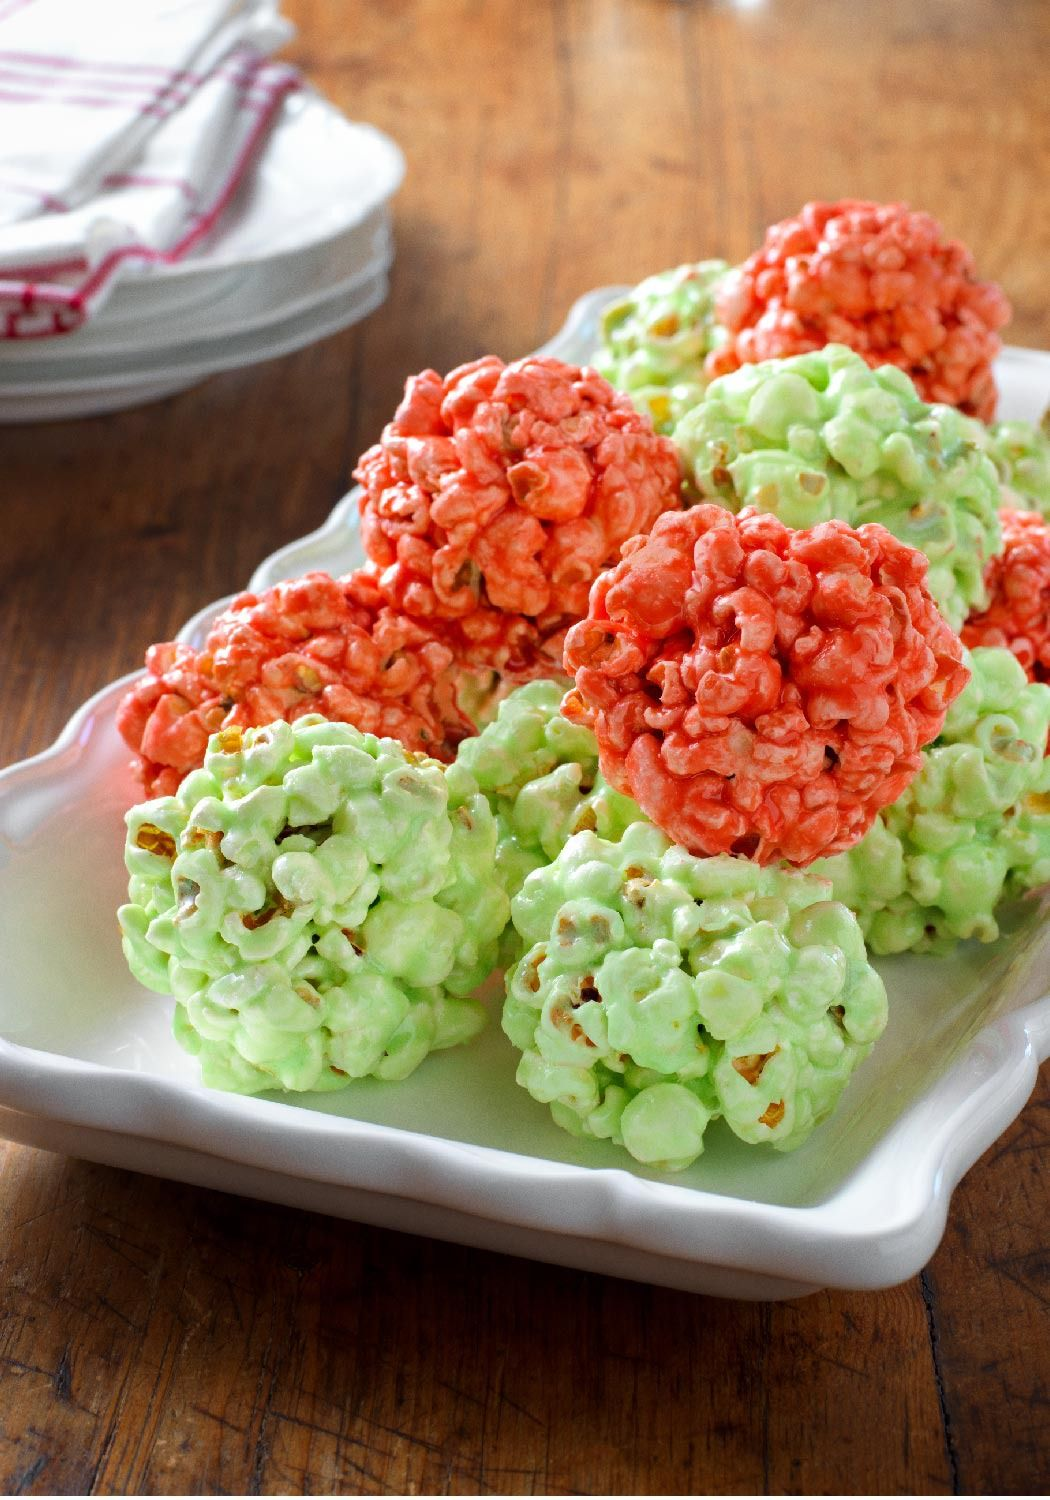 Festive Jell O Popcorn Balls Enter The Share It Pin It Win It Sweepstakes Pin Your Favorite Holiday Recipe Or Pin Your Own For A Chance To Wi Pinteres